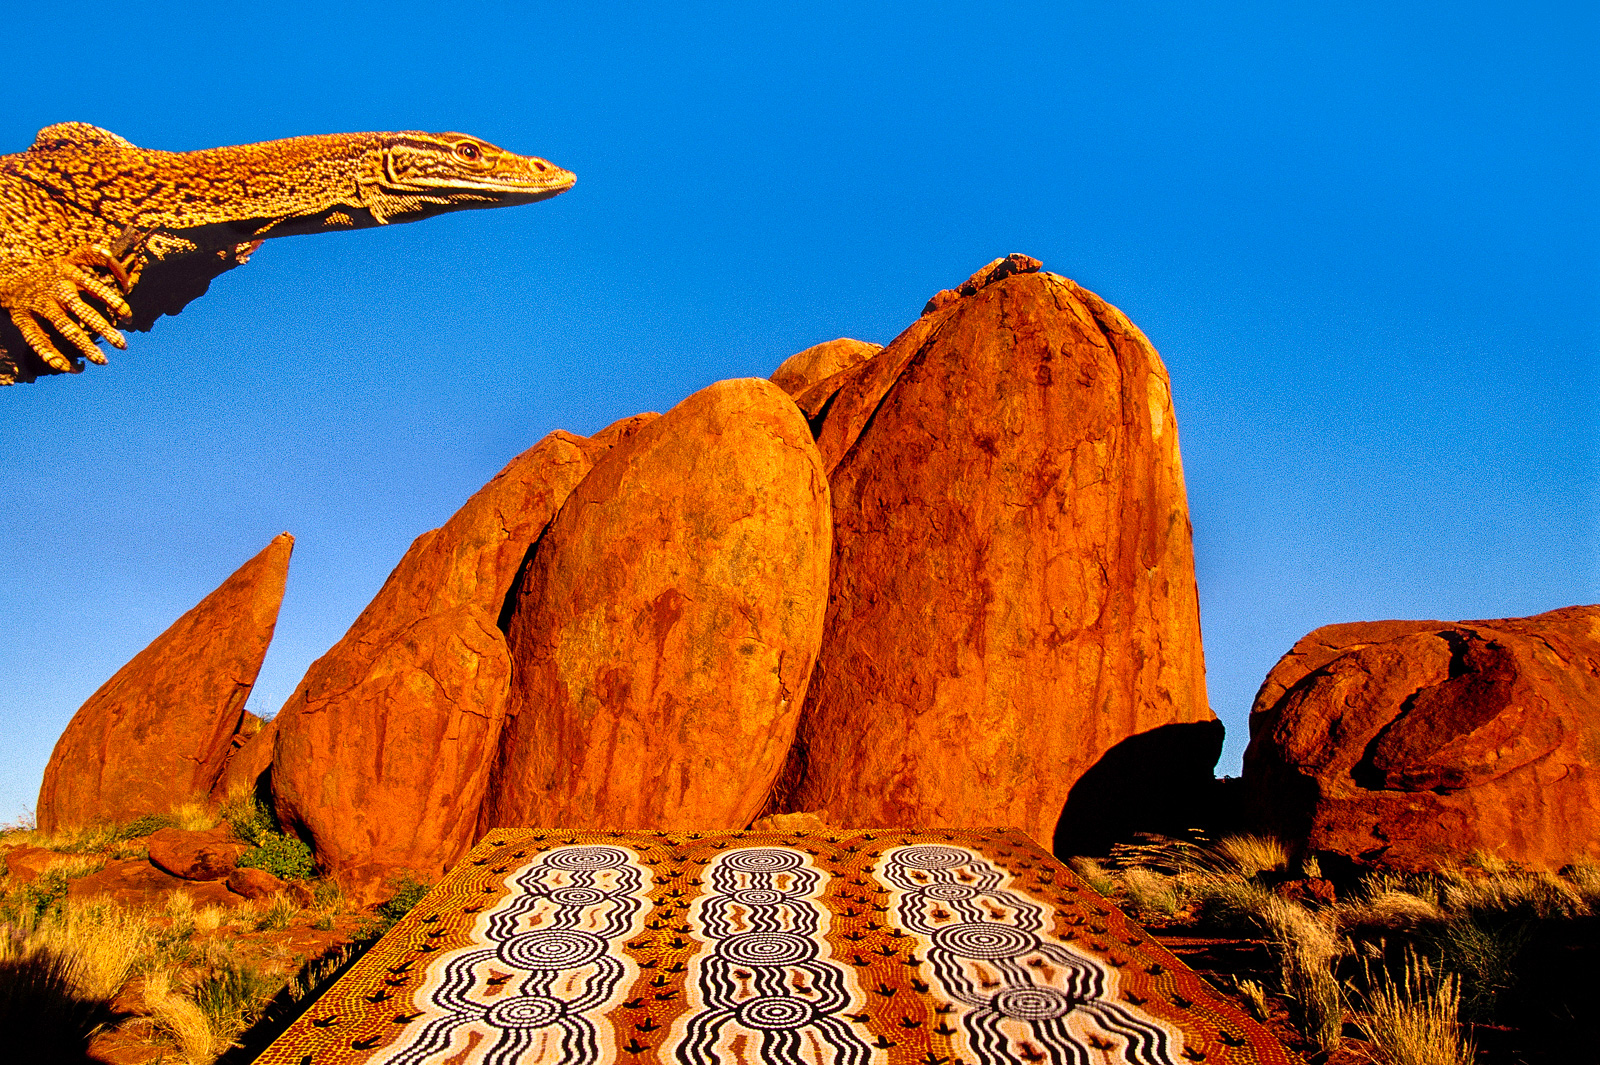 Goanna and aboriginal art, Central Australia